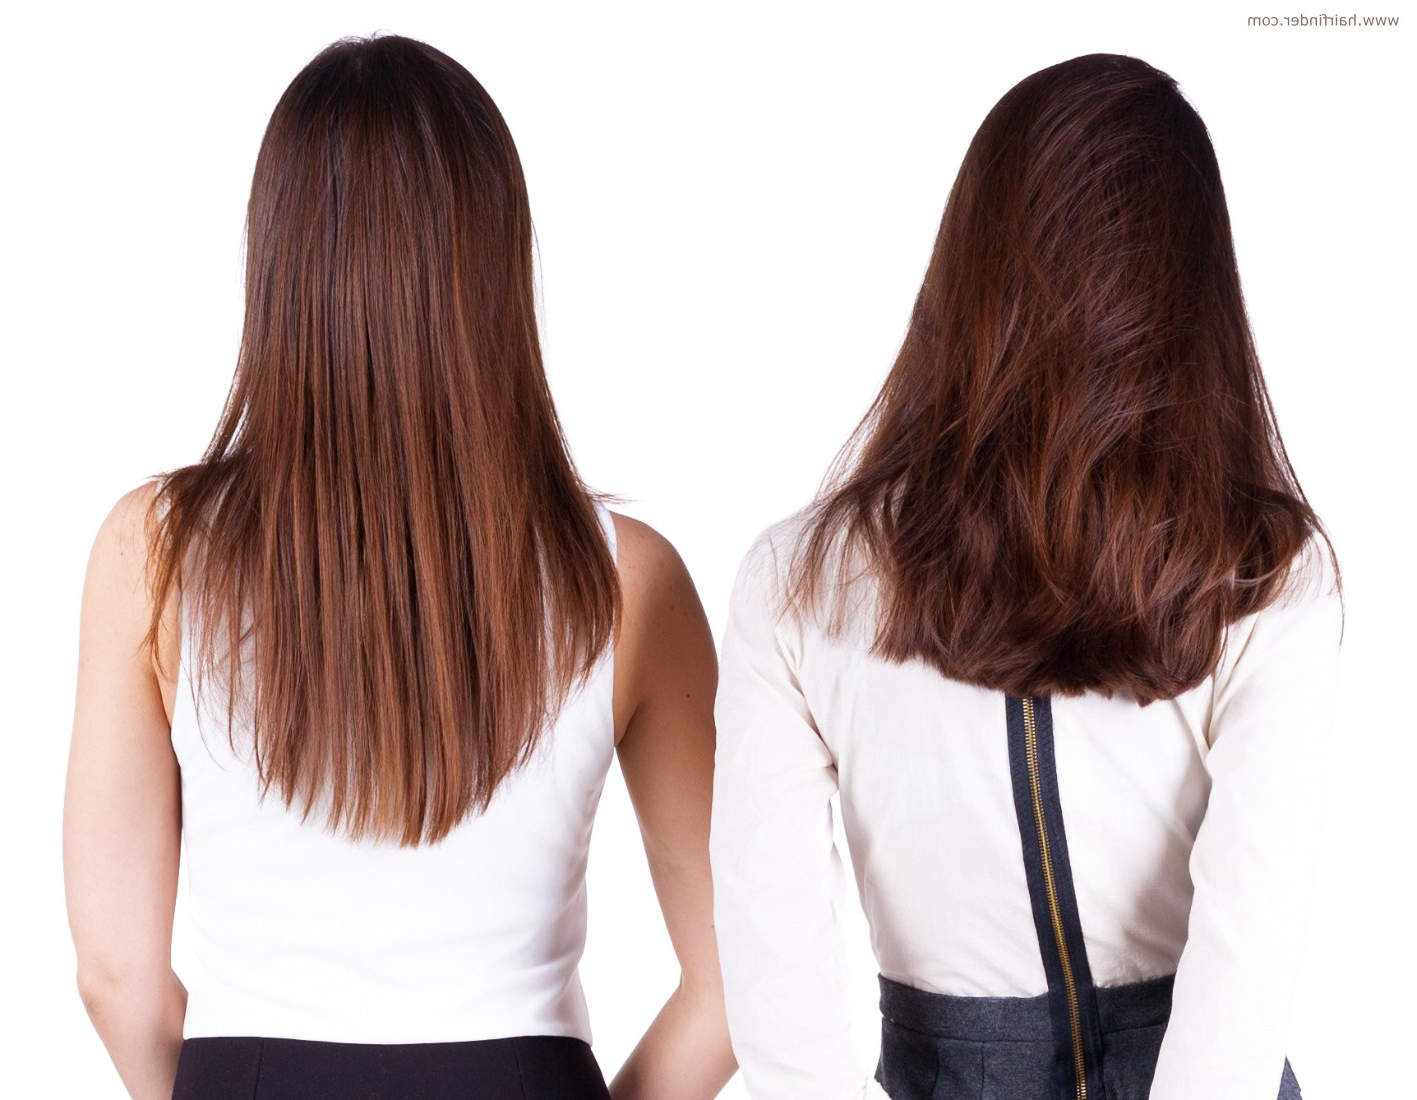 Cut The Back Of Long Hair In A U Shape, V Shape Or A Straight Line Inside Short Bob Hairstyles With Long V Cut Layers (View 8 of 20)